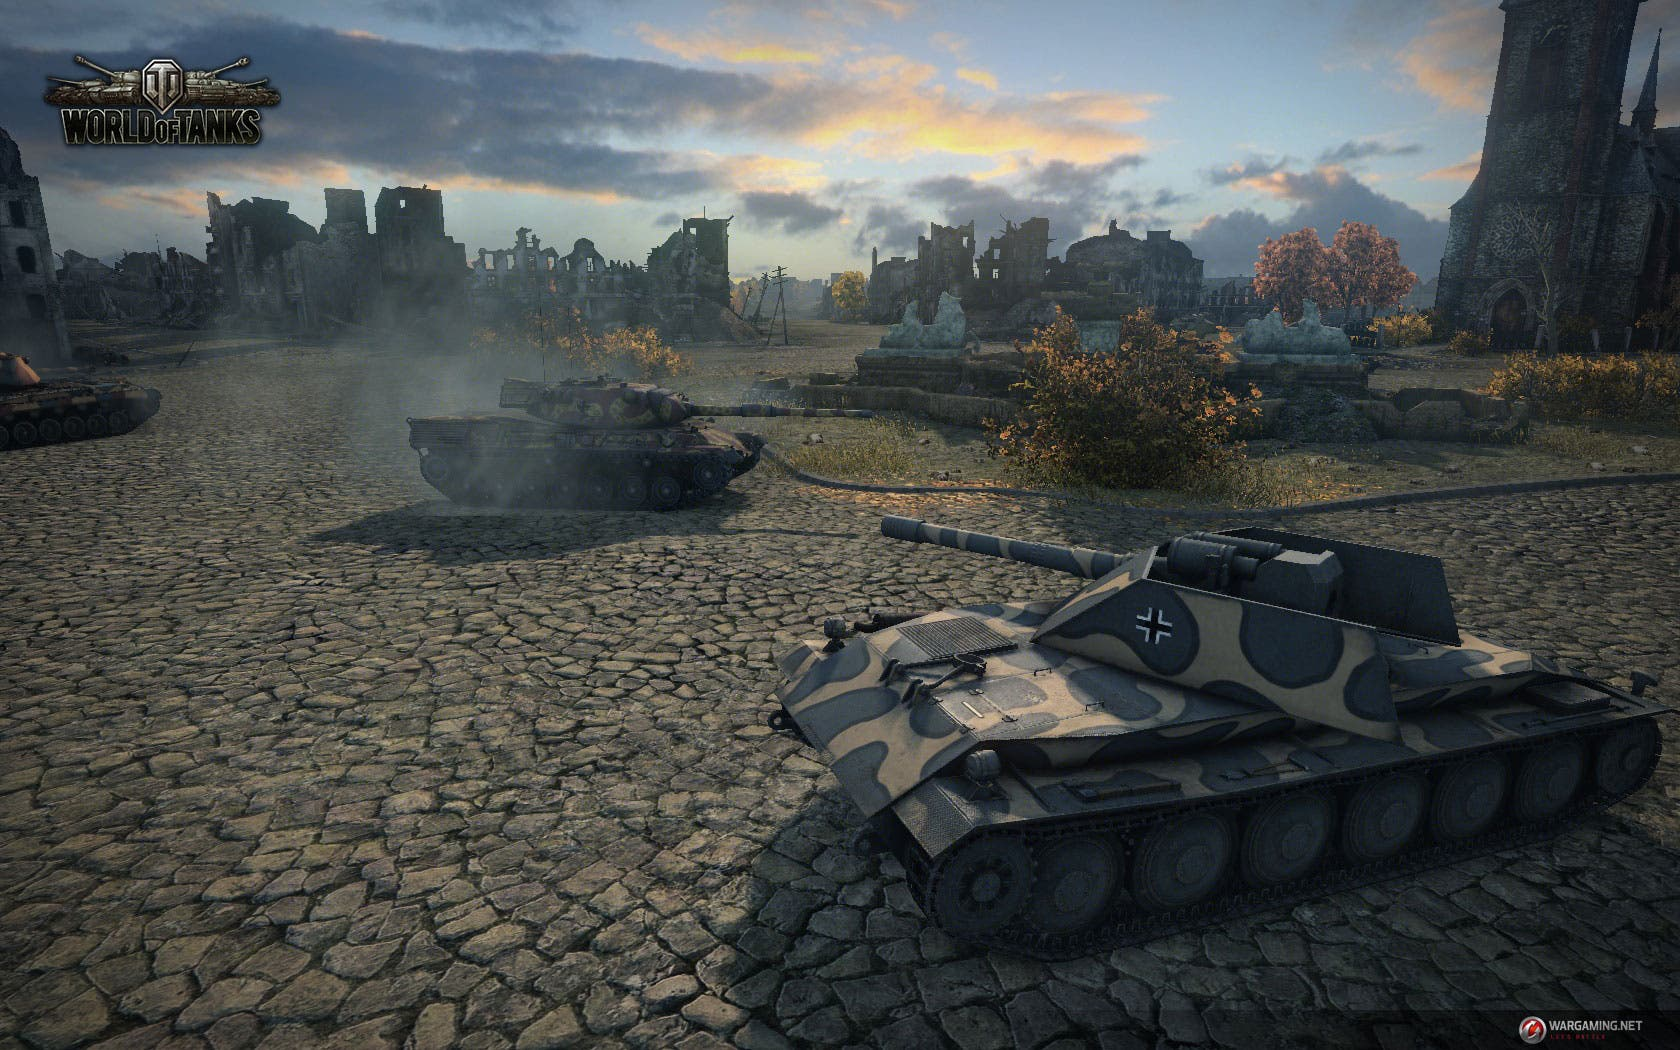 WoT-review (2)